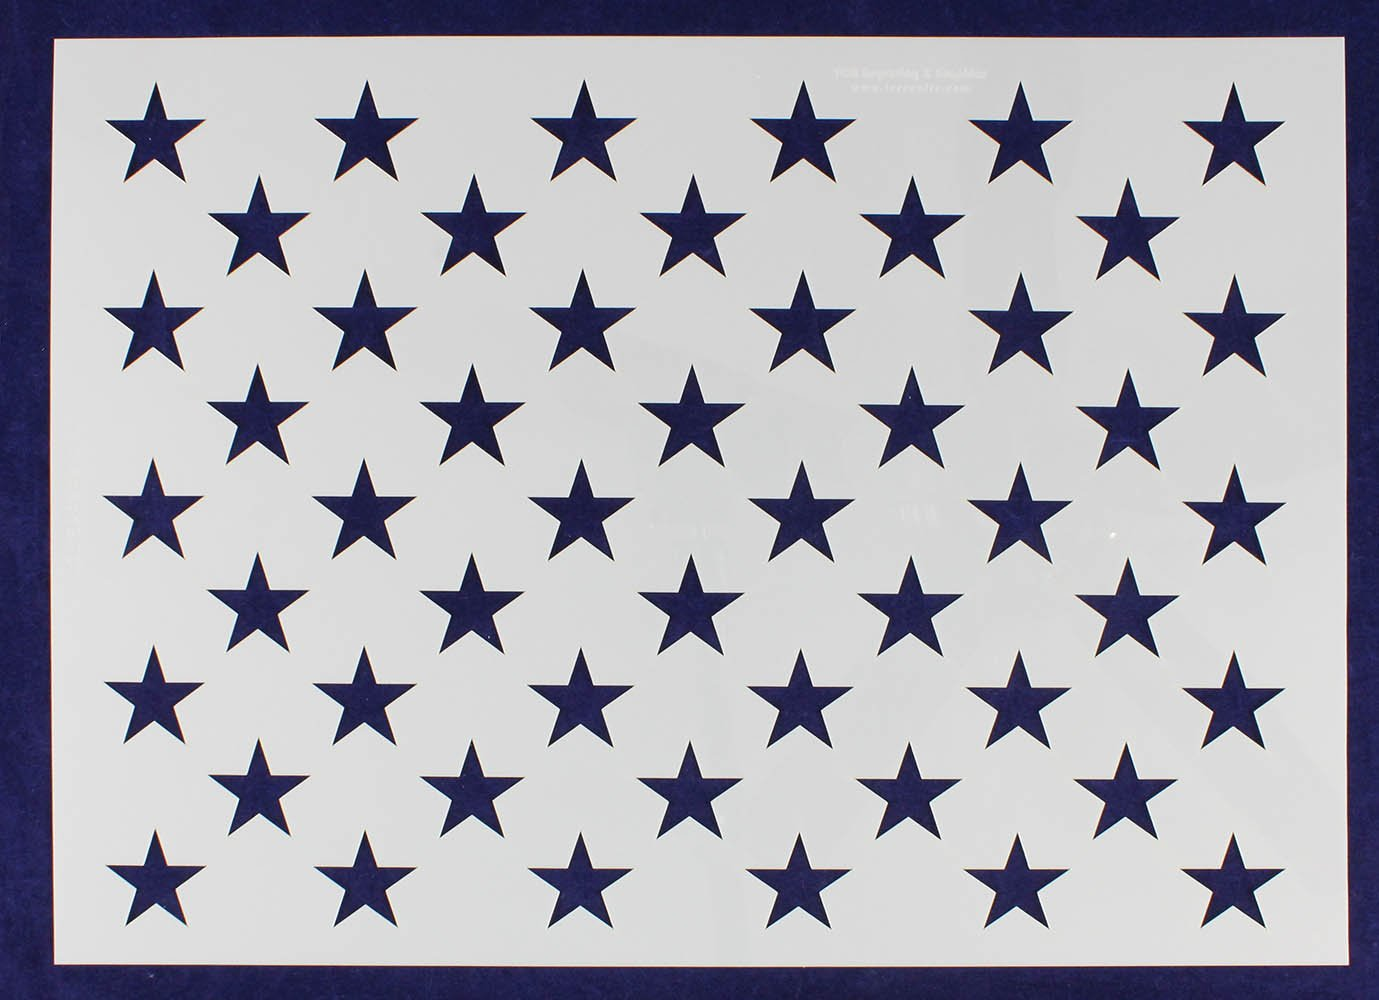 50 Star Field Stencil - US/American Flag - G-Spec 14''H x 19.76''L